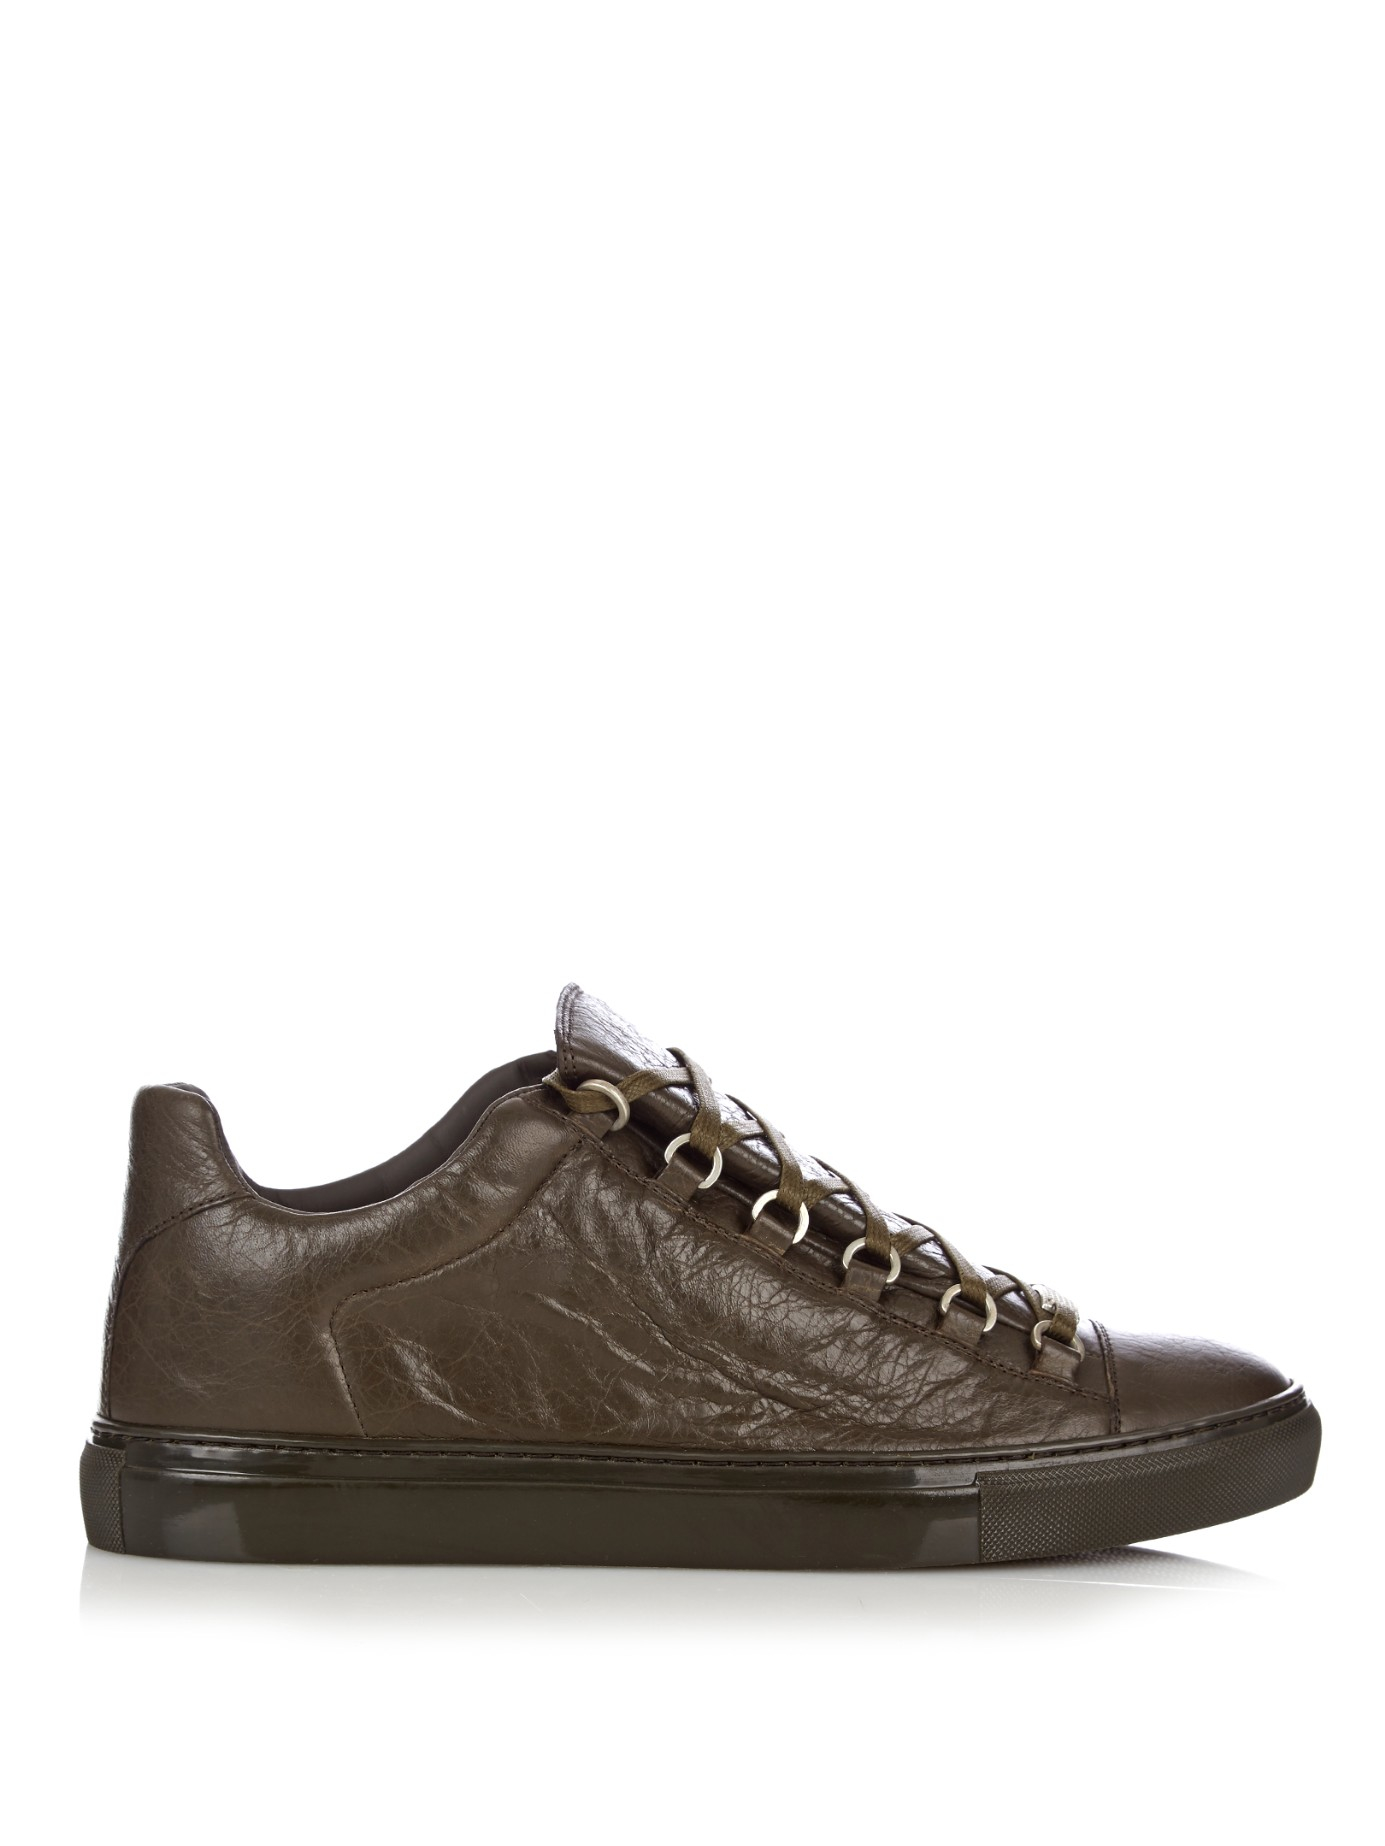 balenciaga arena low top leather trainers in natural for men lyst. Black Bedroom Furniture Sets. Home Design Ideas